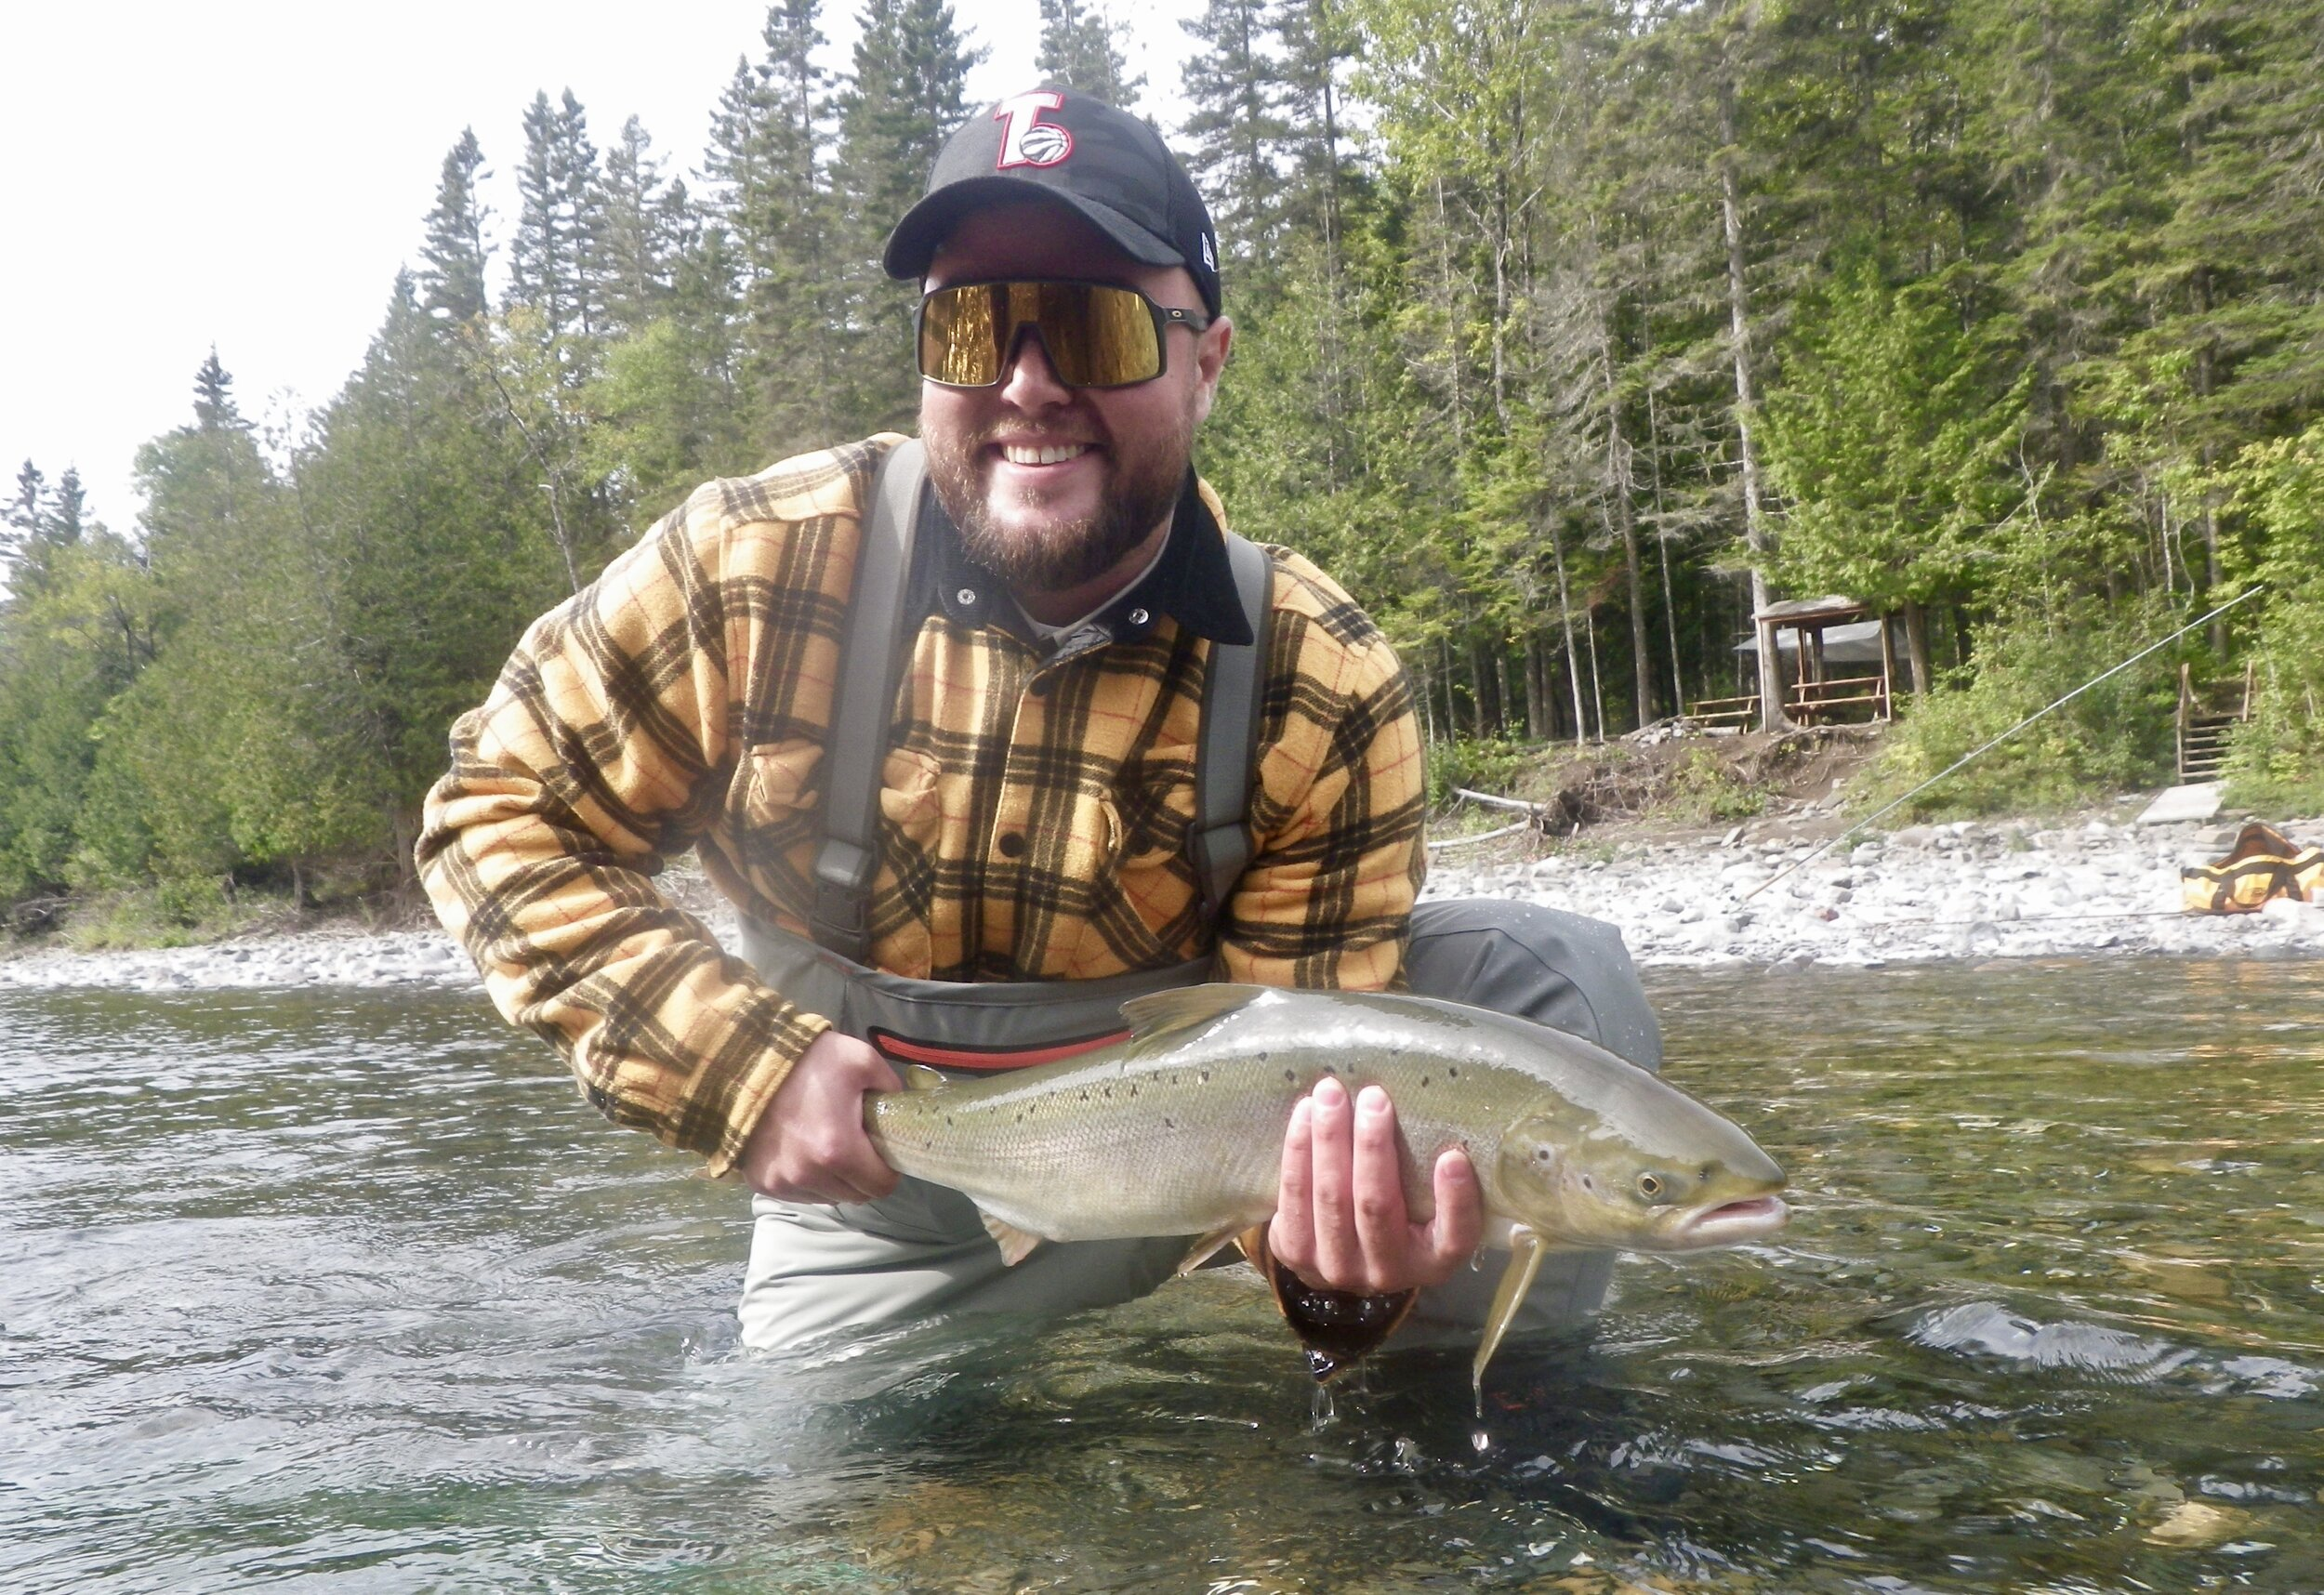 Julian Charbonneau landed this great salmon on the Bonaventure River earlier this week! Amazing Job Julian!